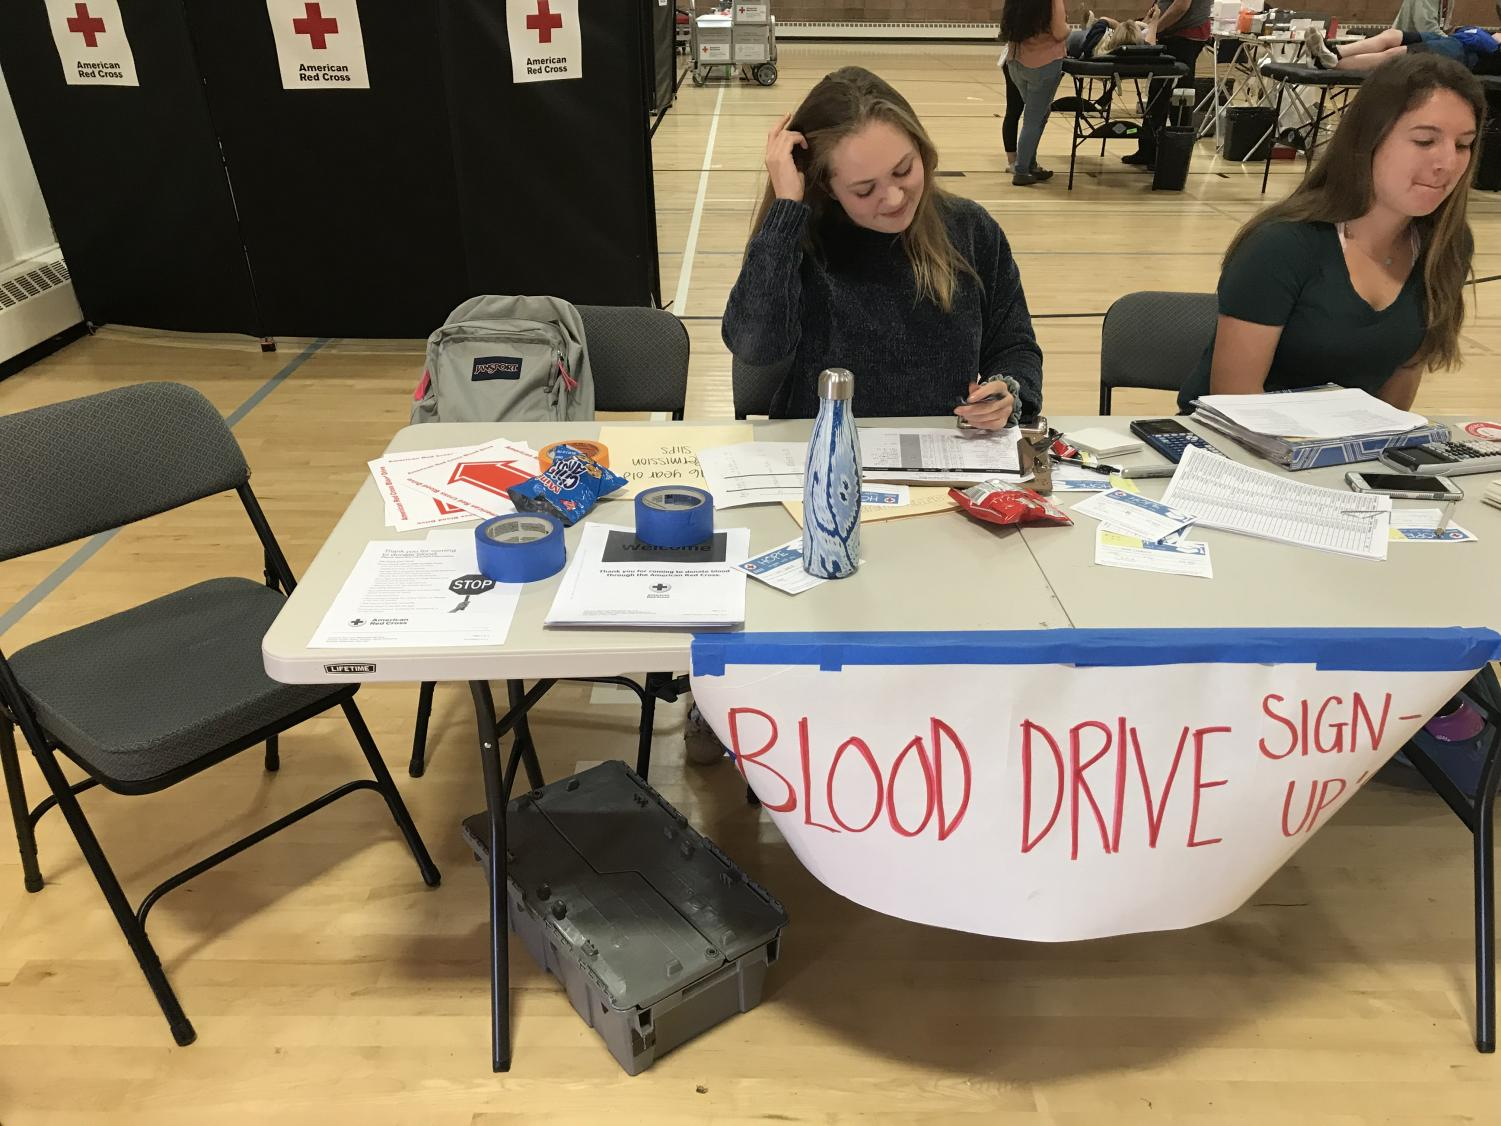 Holly Rusch, lead of the Blood Drive committee, was happy with the turnout.